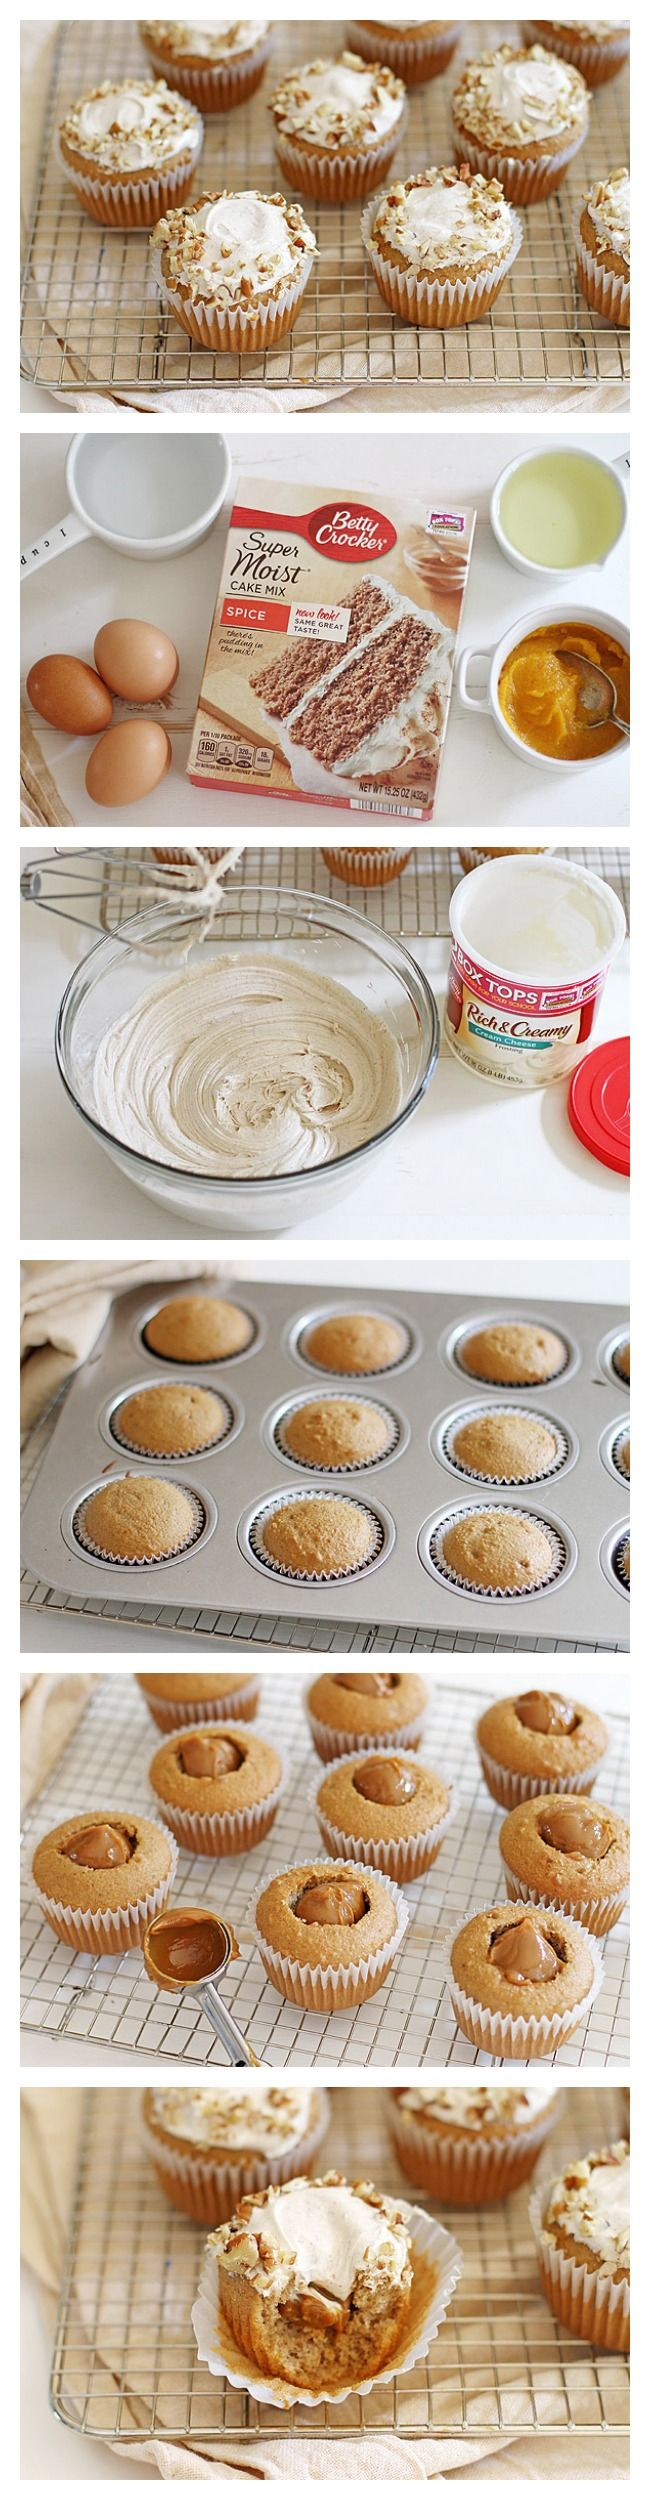 Caramel Cream Filled Cupcakes With Cinnamon Frosting